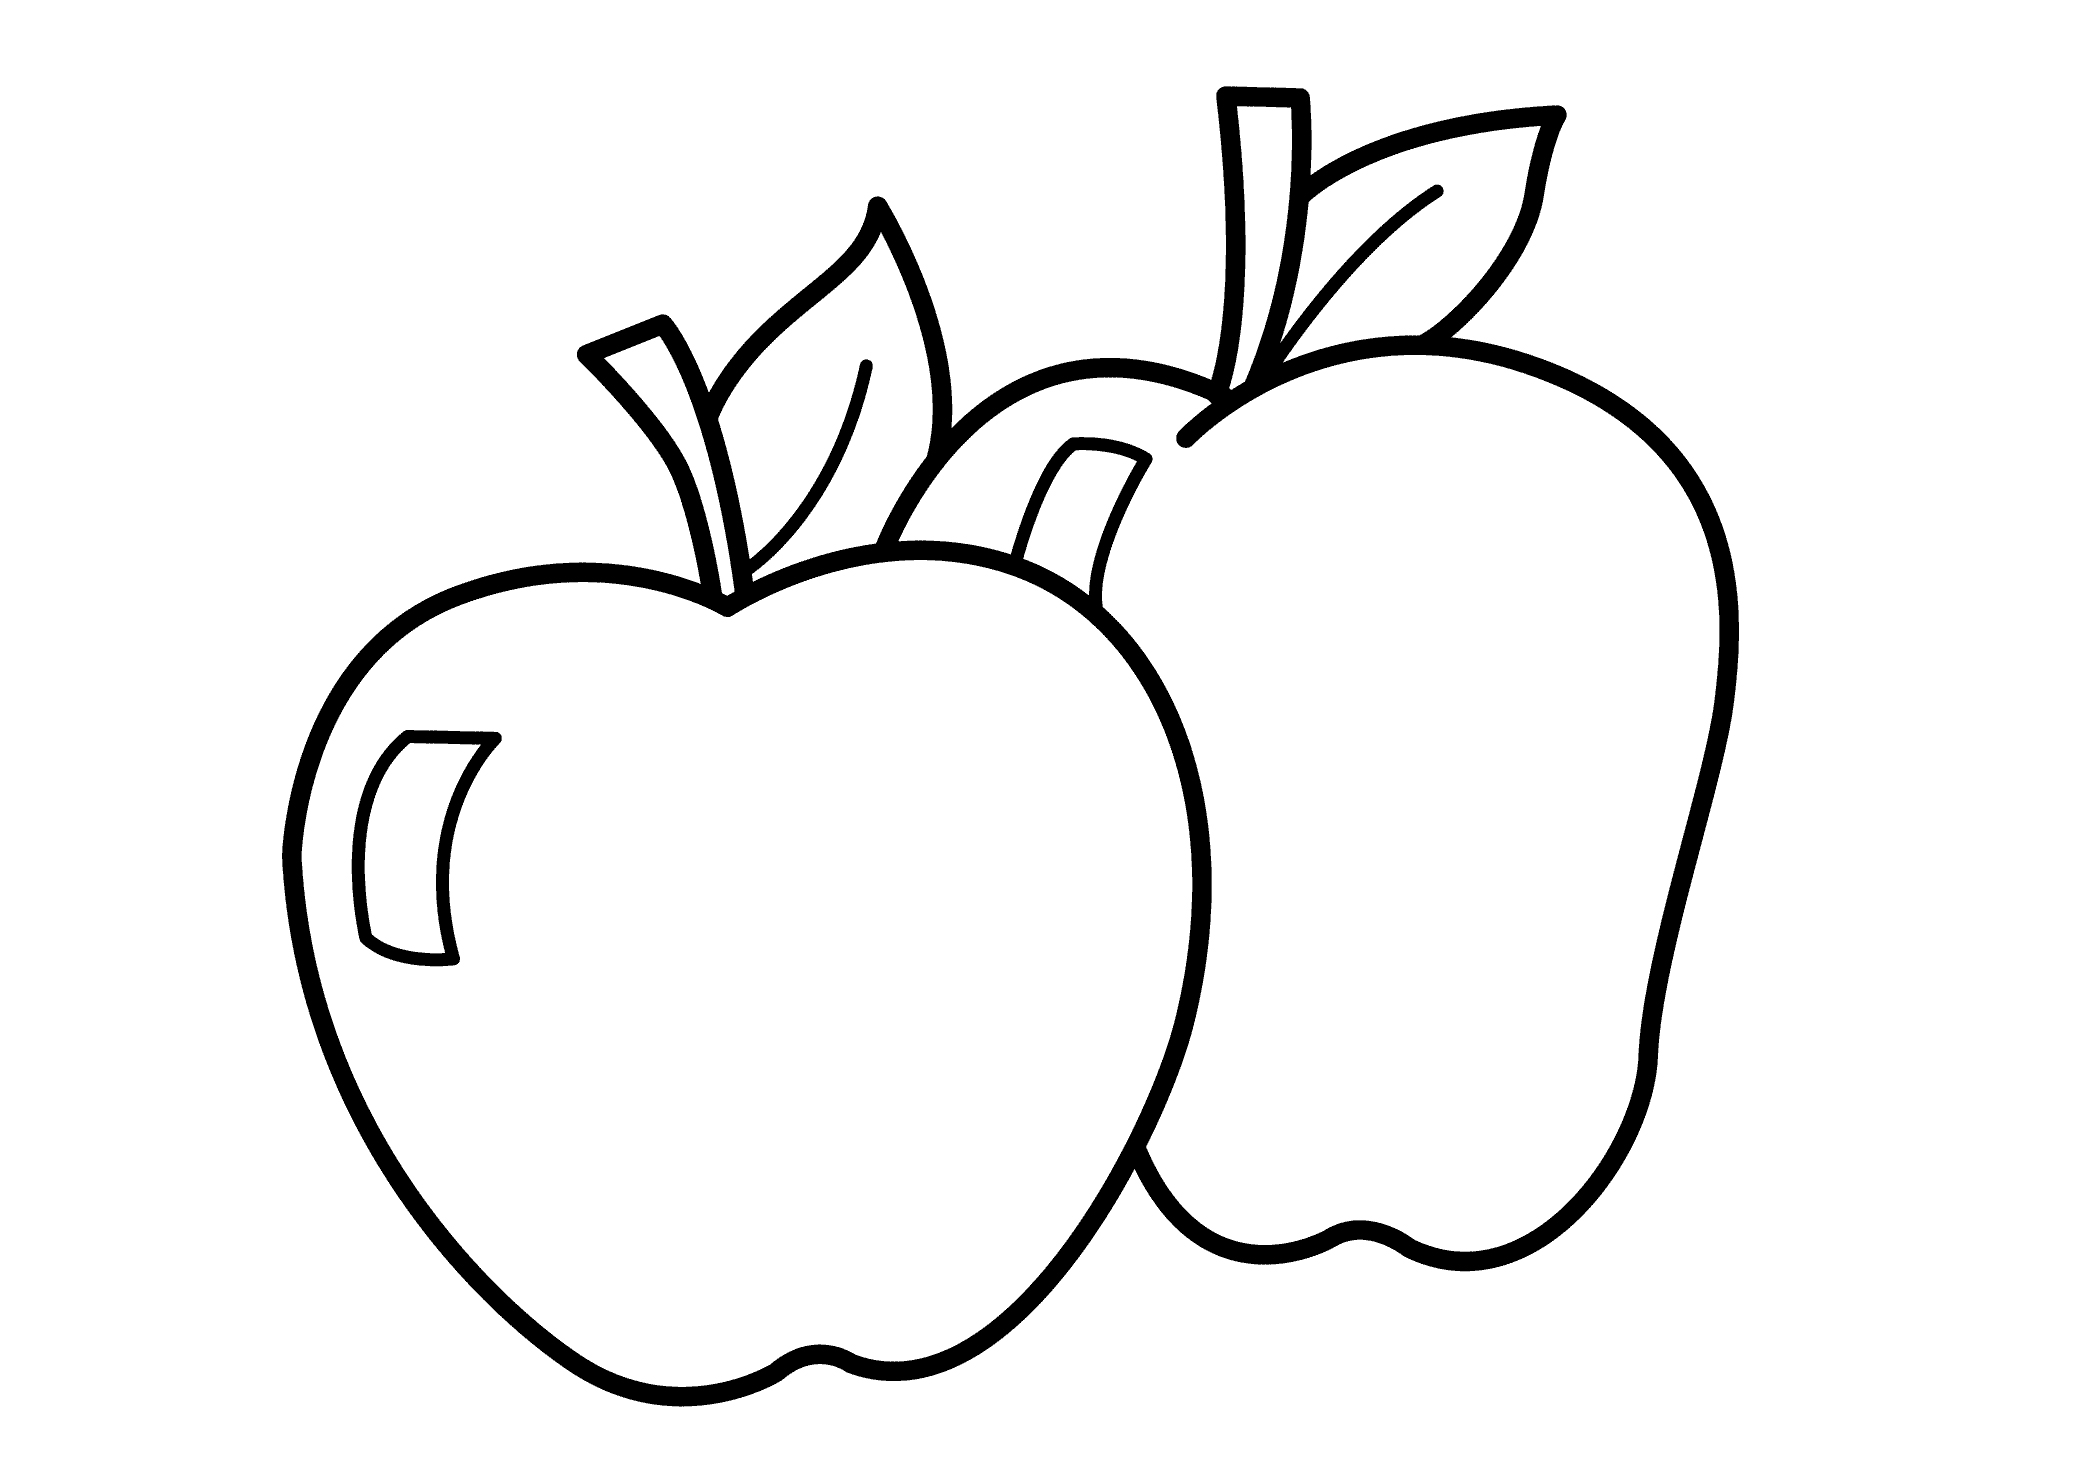 pictures of apples to color apple logo coloring pages at getcoloringscom free to apples pictures of color